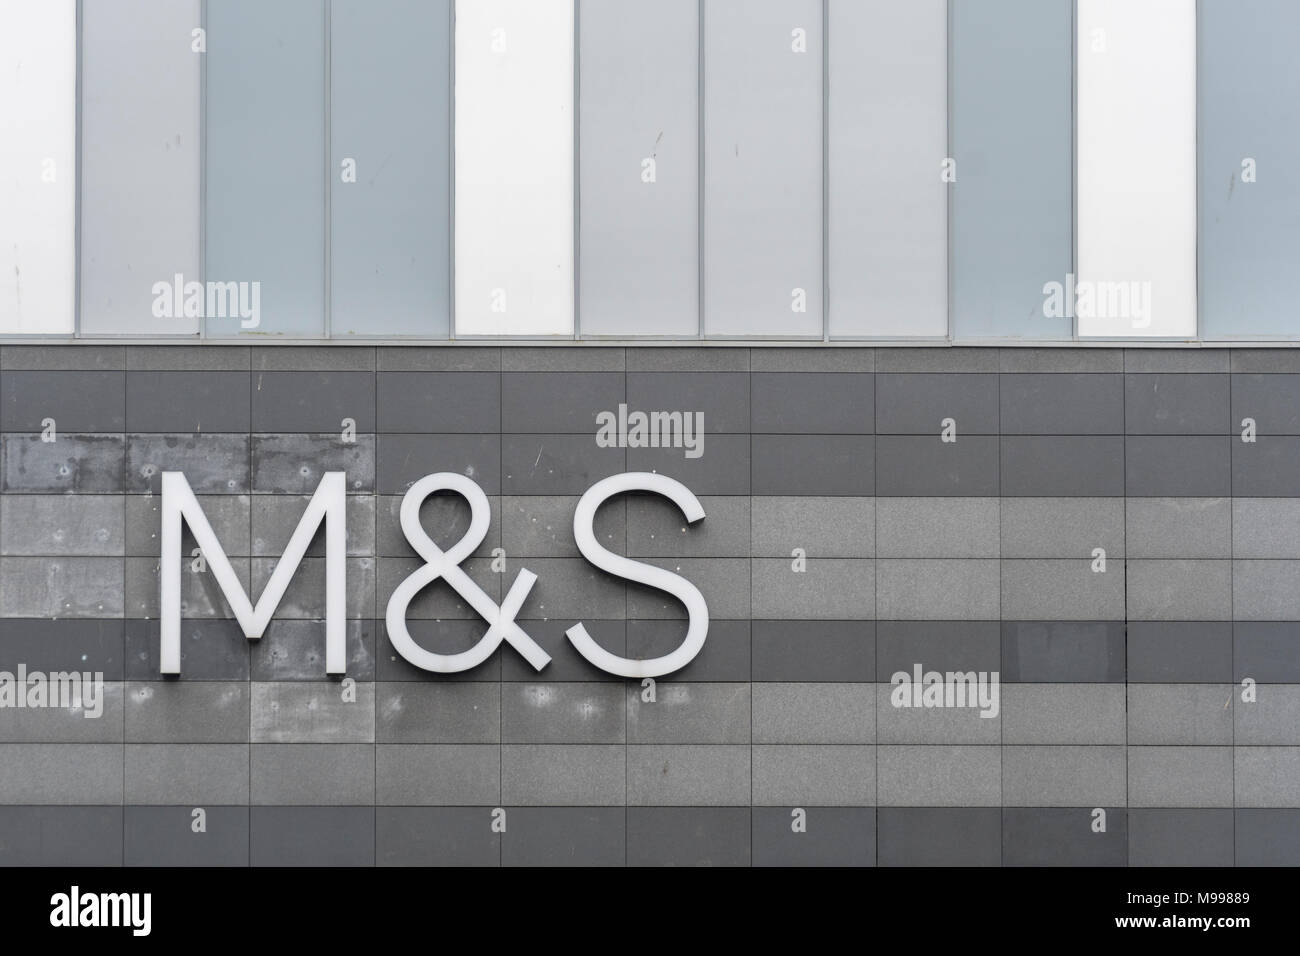 Marks and Spencer / M&S logo at Drake Centre mall, Plymouth. Possible metaphor for M&S store closures 2018, profit warning, profits plunge, job cuts. - Stock Image